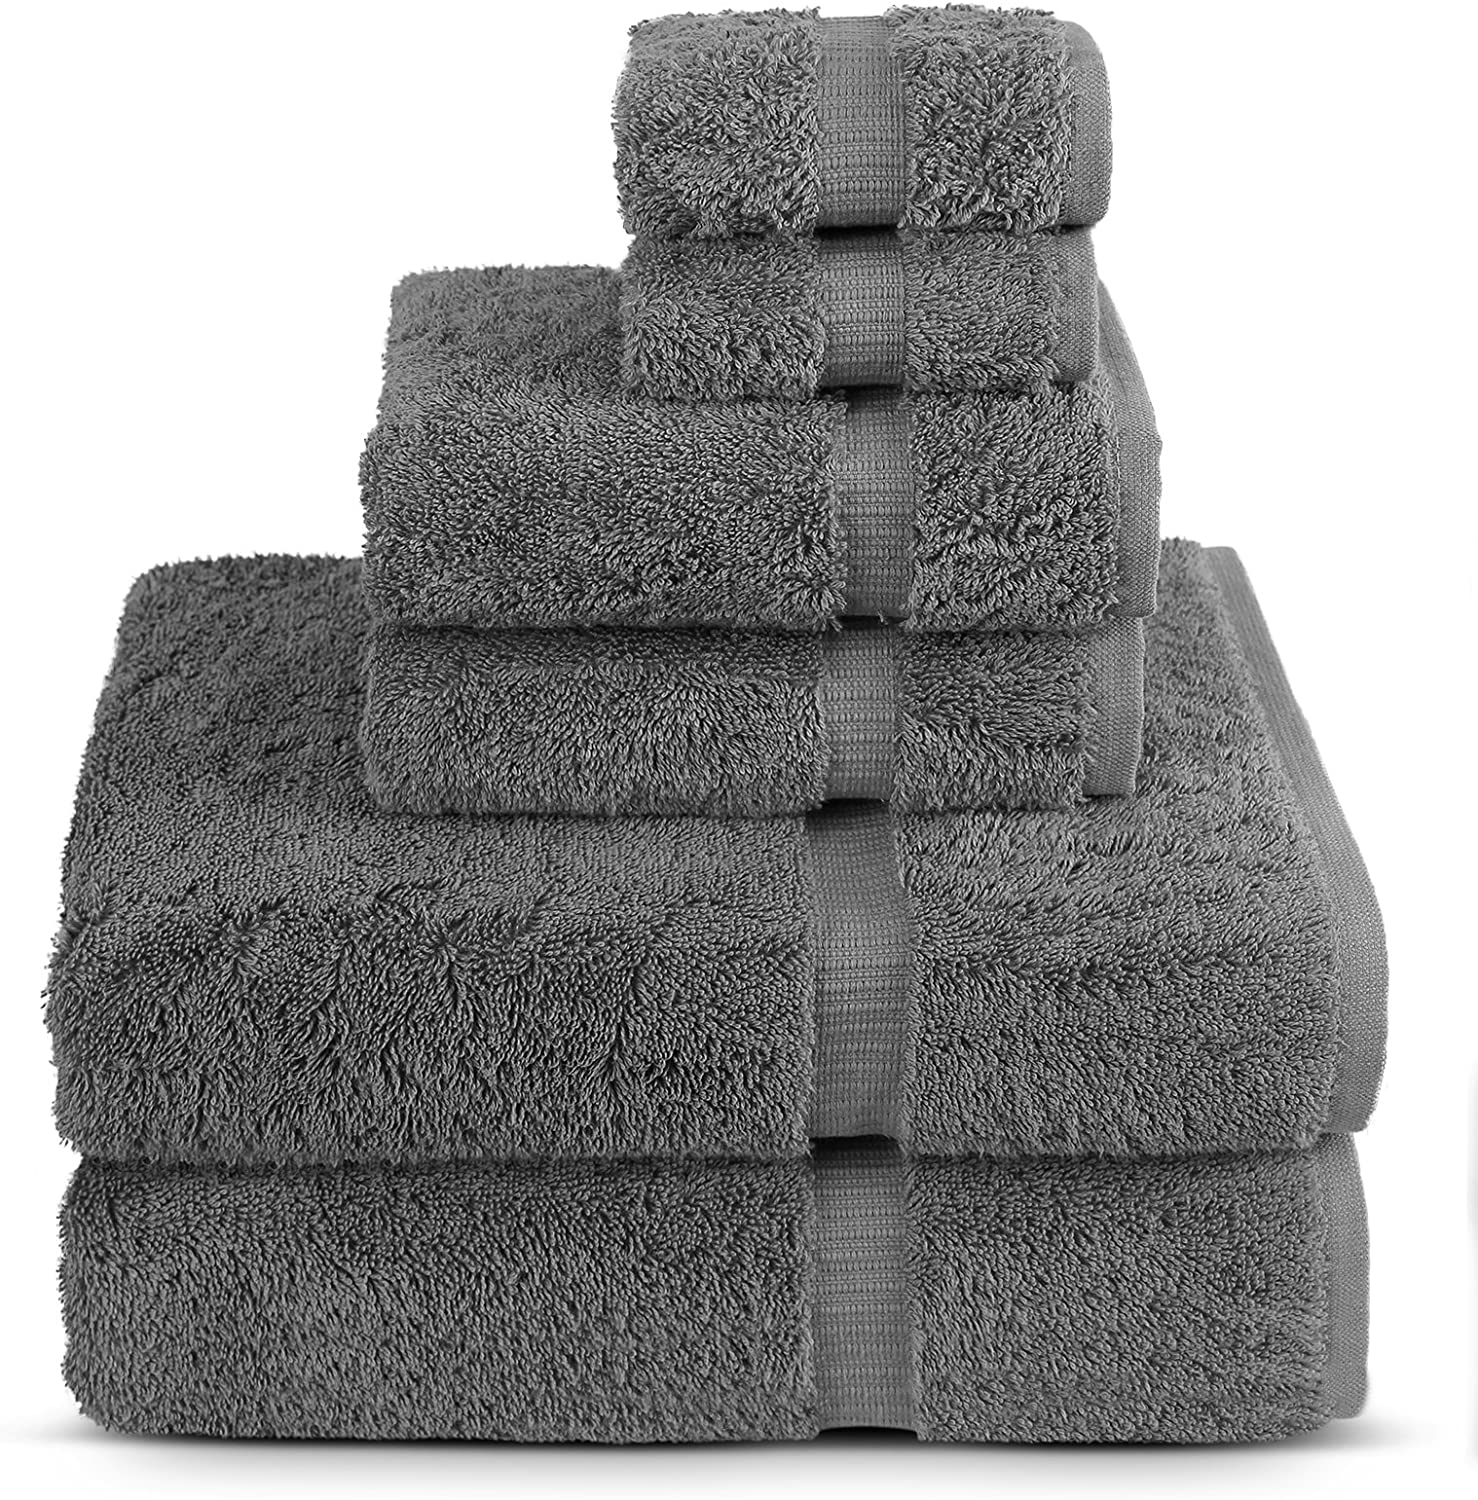 6 Piece Turkish Luxury Turkish Cotton Towel Set - Eco Friendly, 2 Bath Towels, 2 Hand Towels, 2 Wash Clothes by Turkuoise Turkish Towel (Grey)